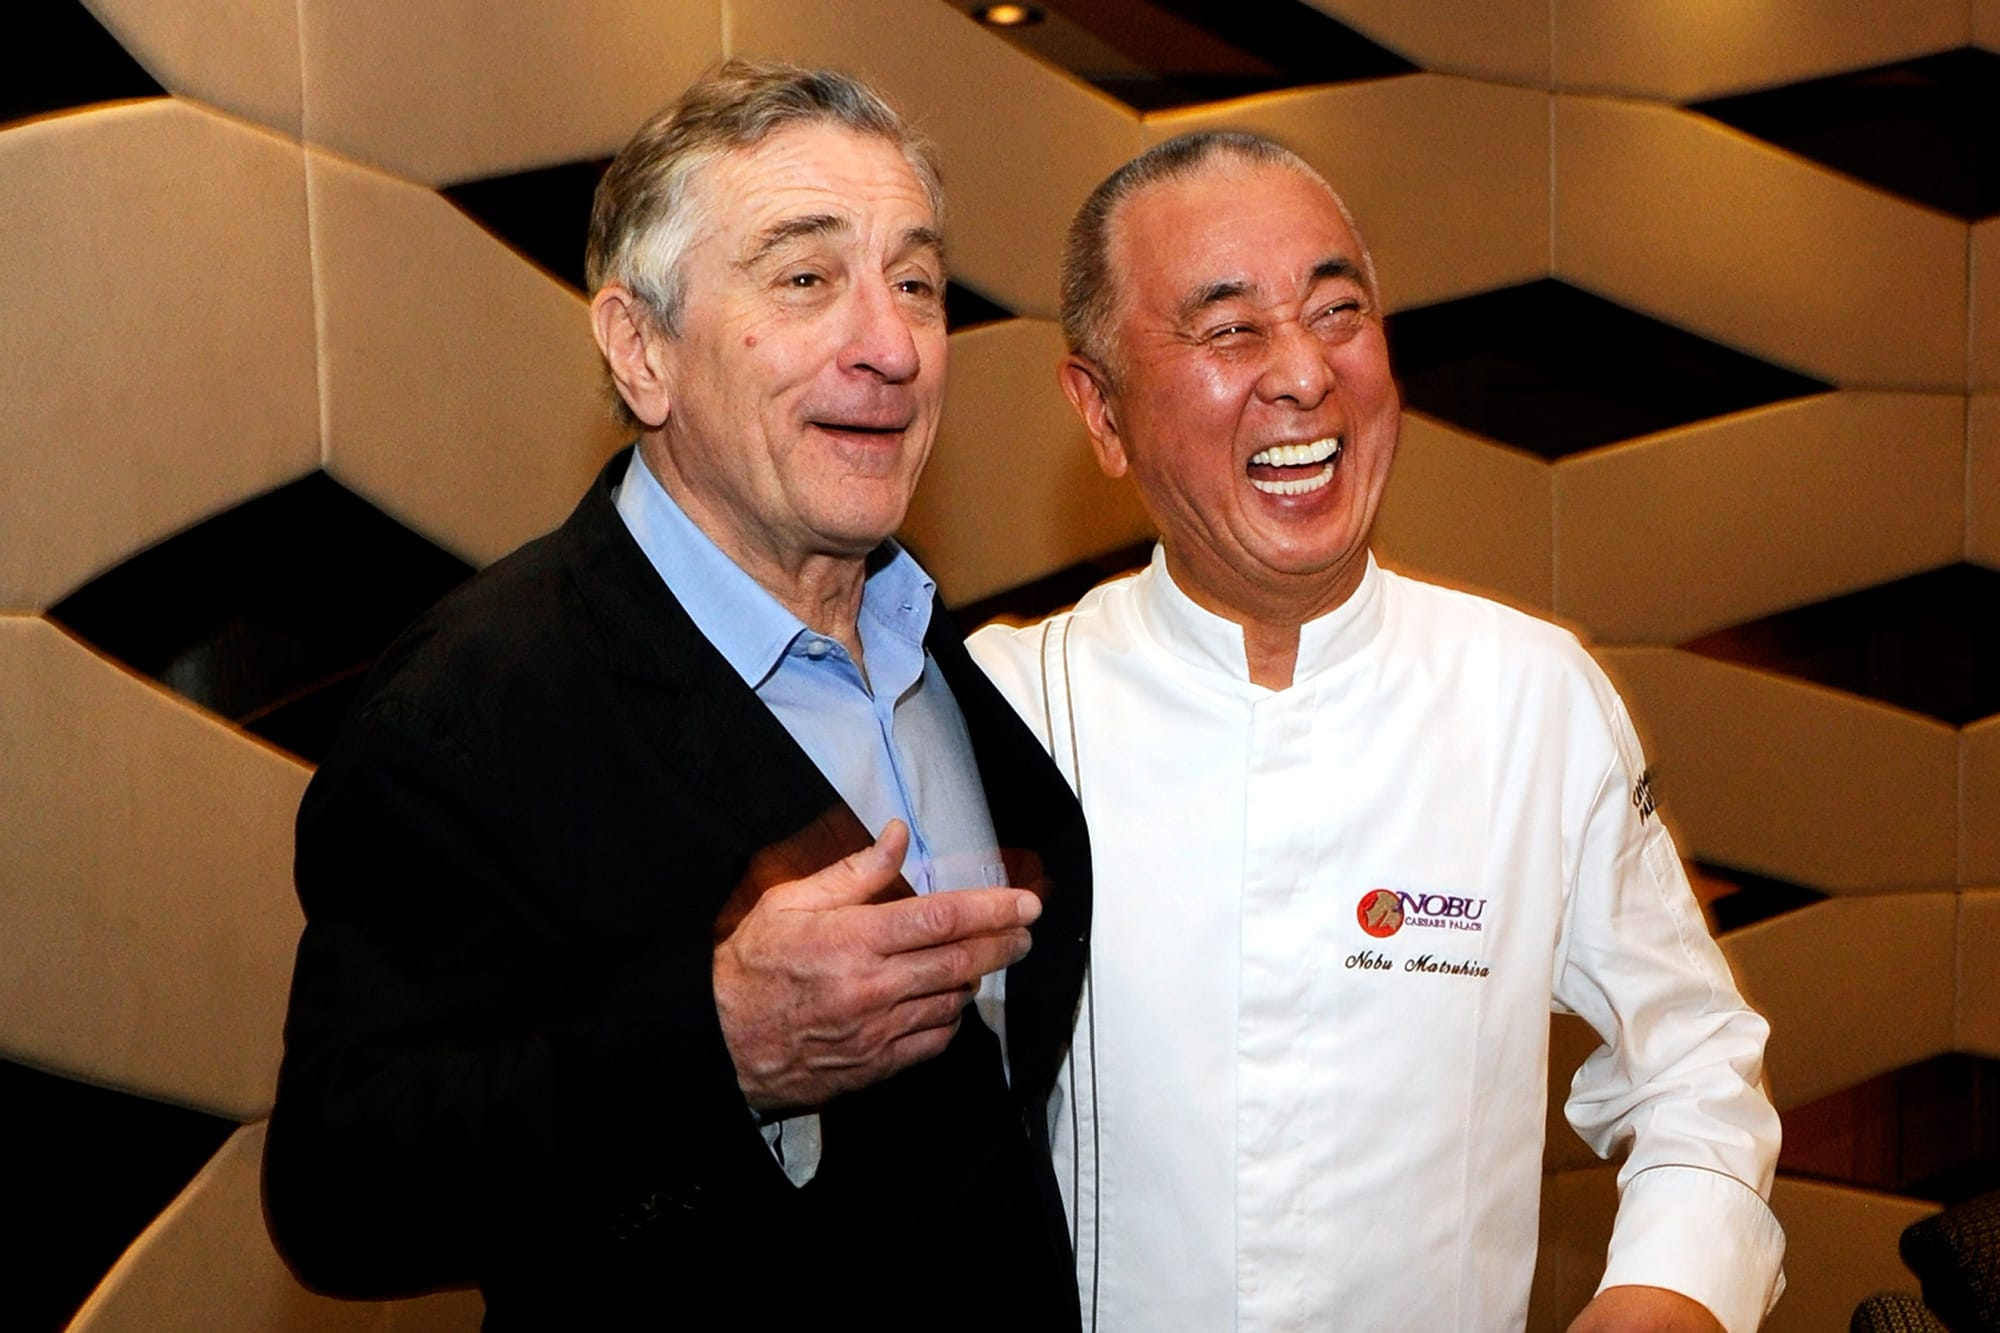 De Niro-backed Nobu restaurants took more than a dozen PPP loans